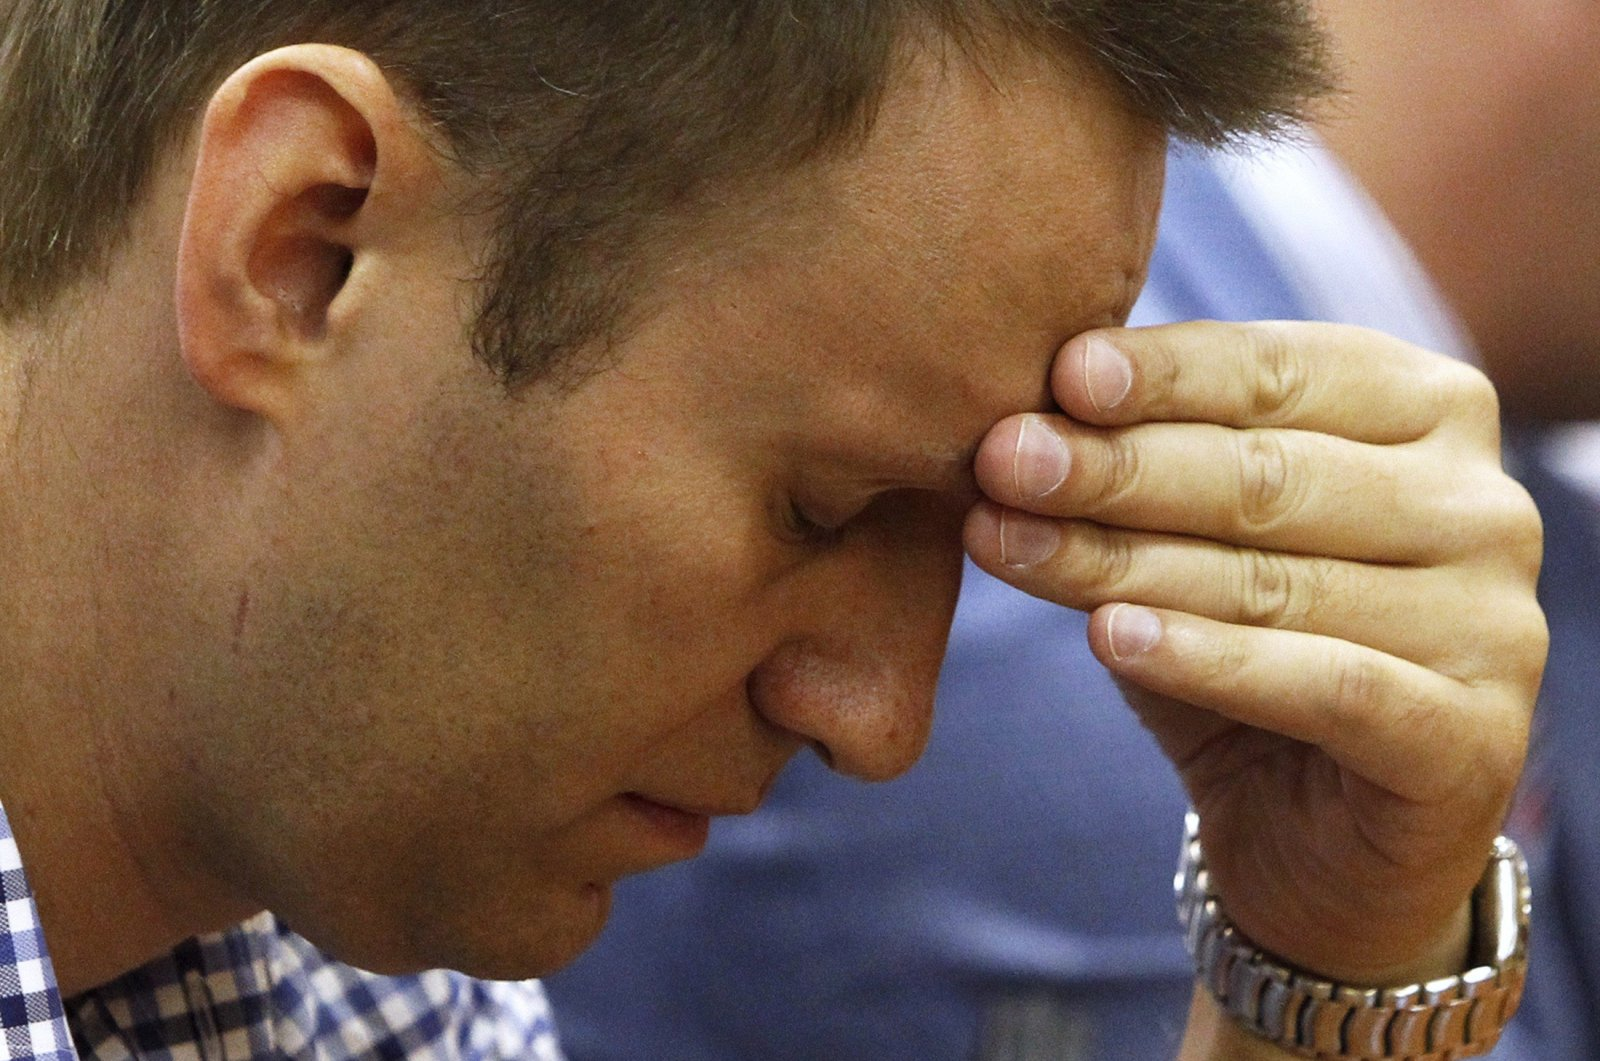 Russian protest leader Alexei Navalny attends a court hearing in Kirov, Russia, July 18, 2013. (Reuters Photo)